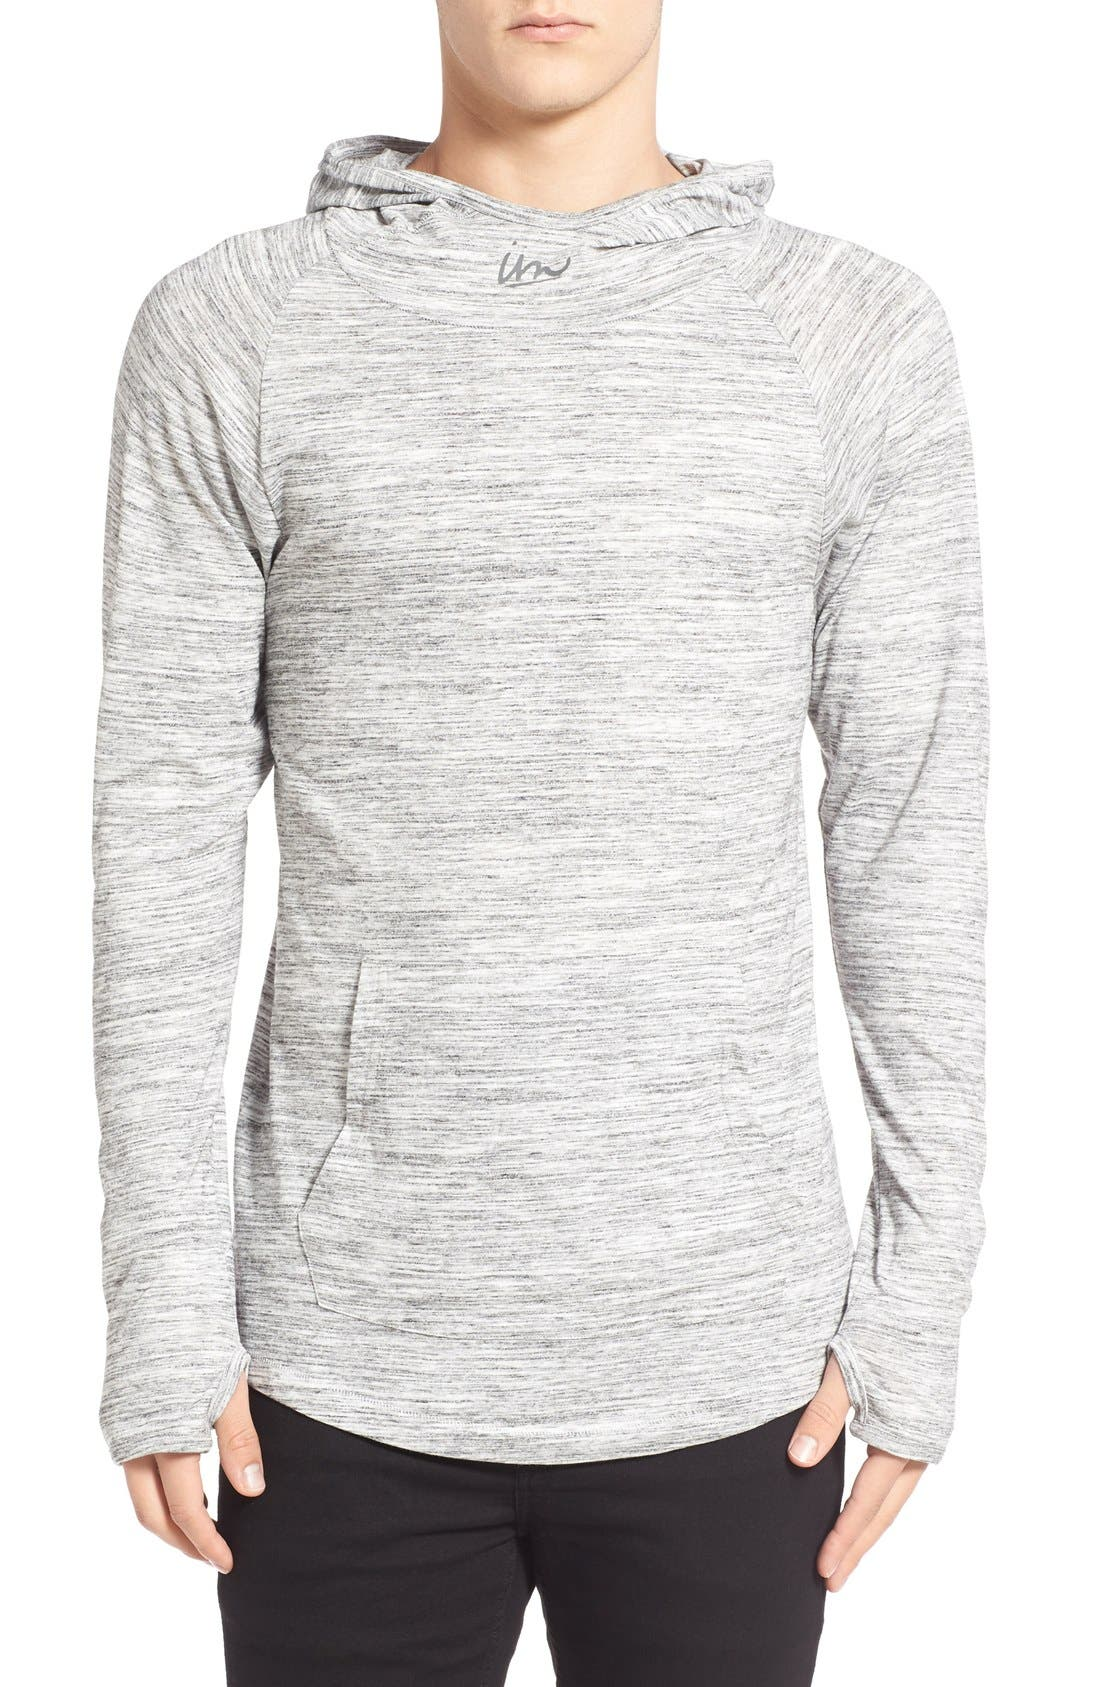 Imperial Motion 'Trace Suba' Cowl Neck Hoodie